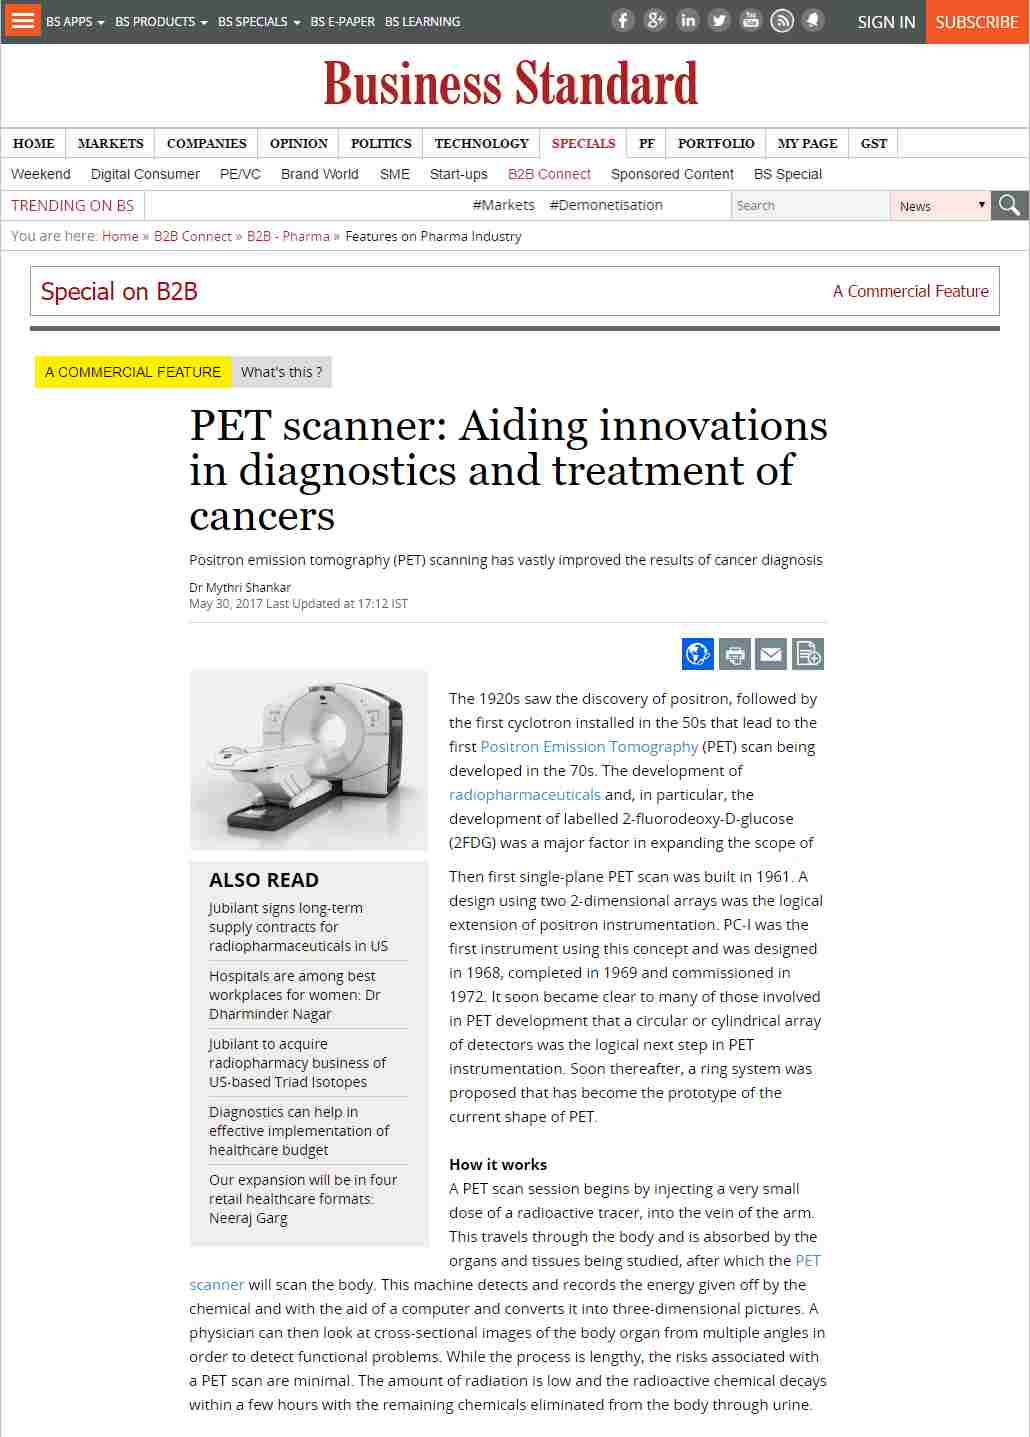 PET scanner: Aiding innovations in diagnostics and treatment of cancers